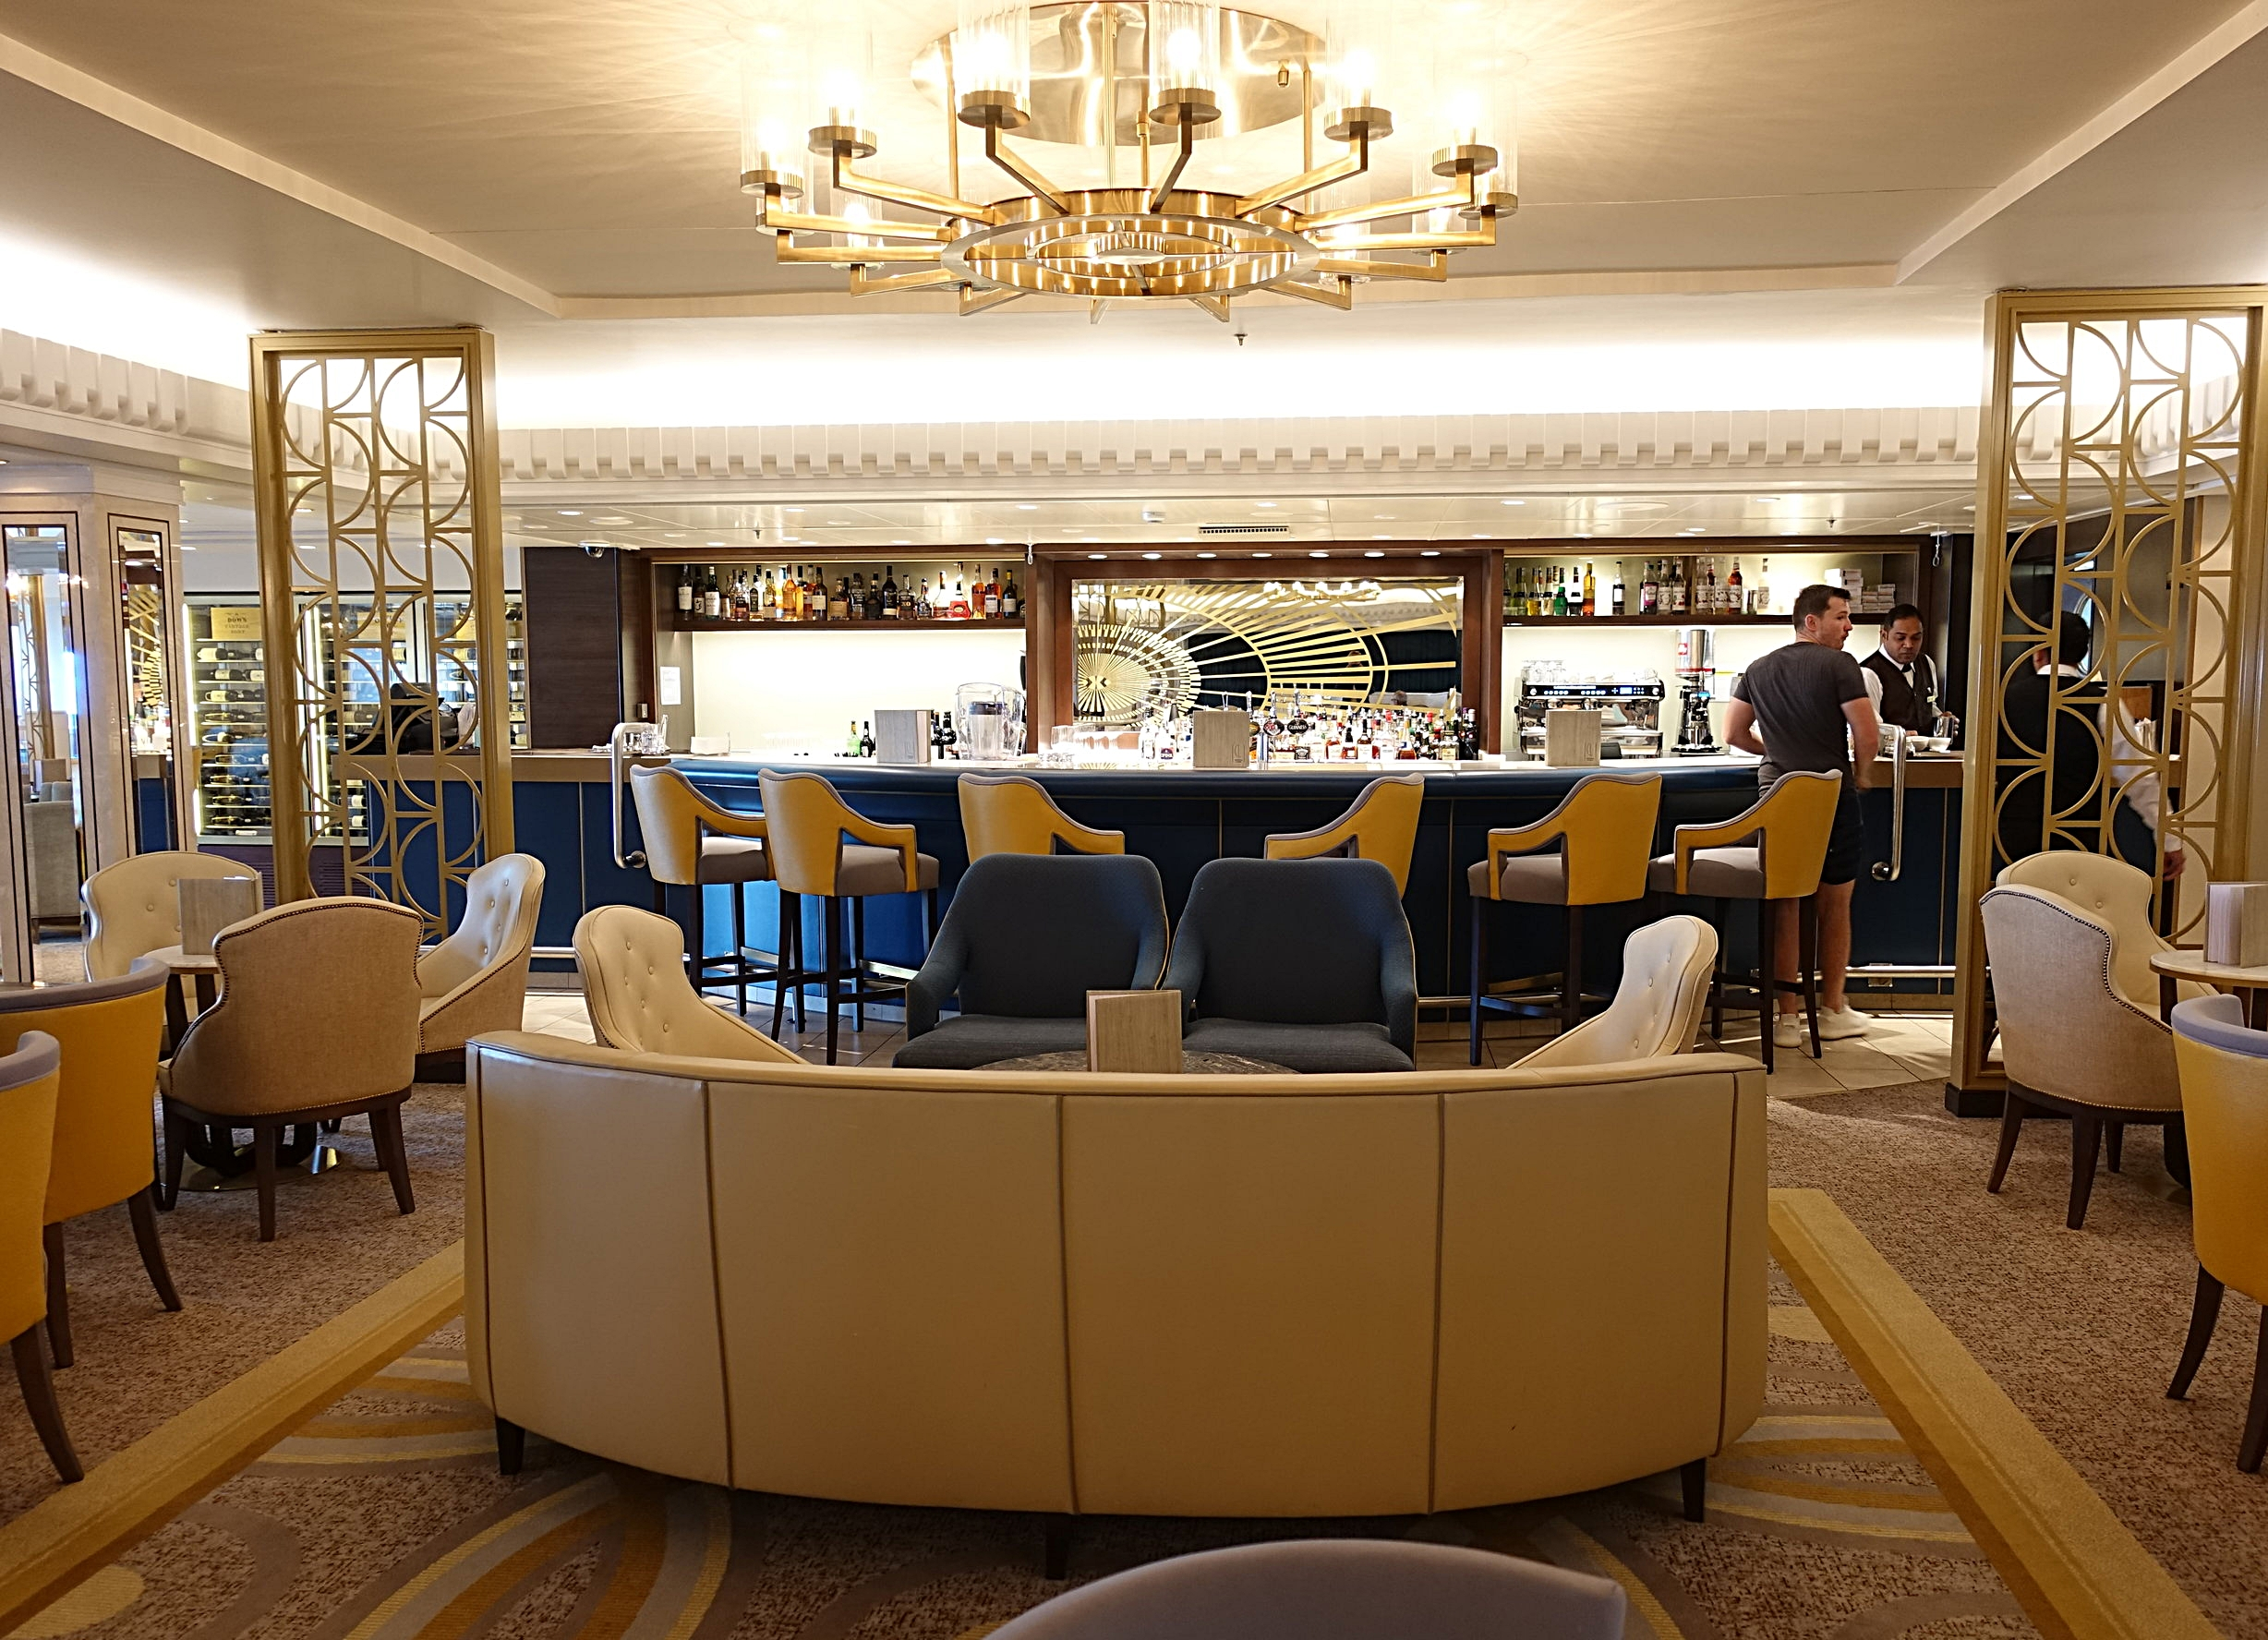 The Carinthia Lounge, such a pretty and relaxing place to while away the hours.